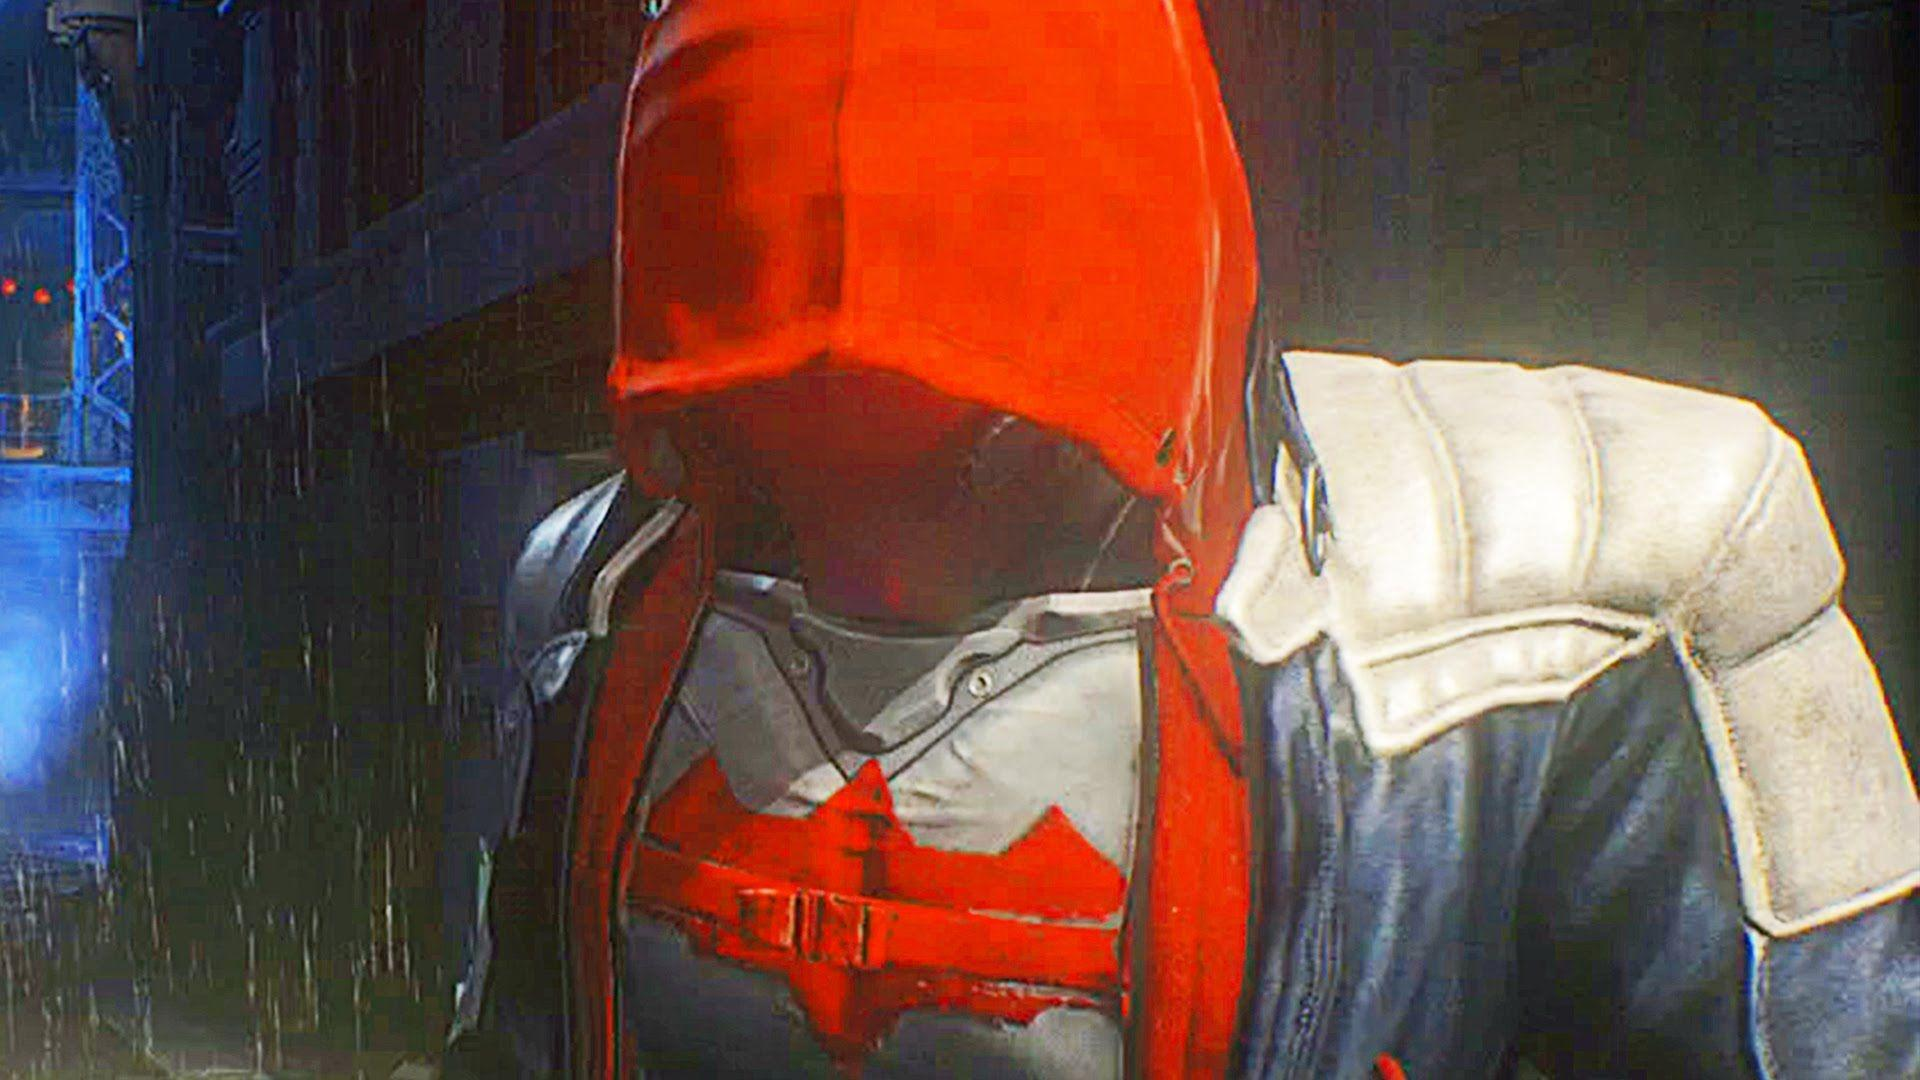 Jason Todd Red Hood Batman Arkham Knight HD Image and Wallpapers